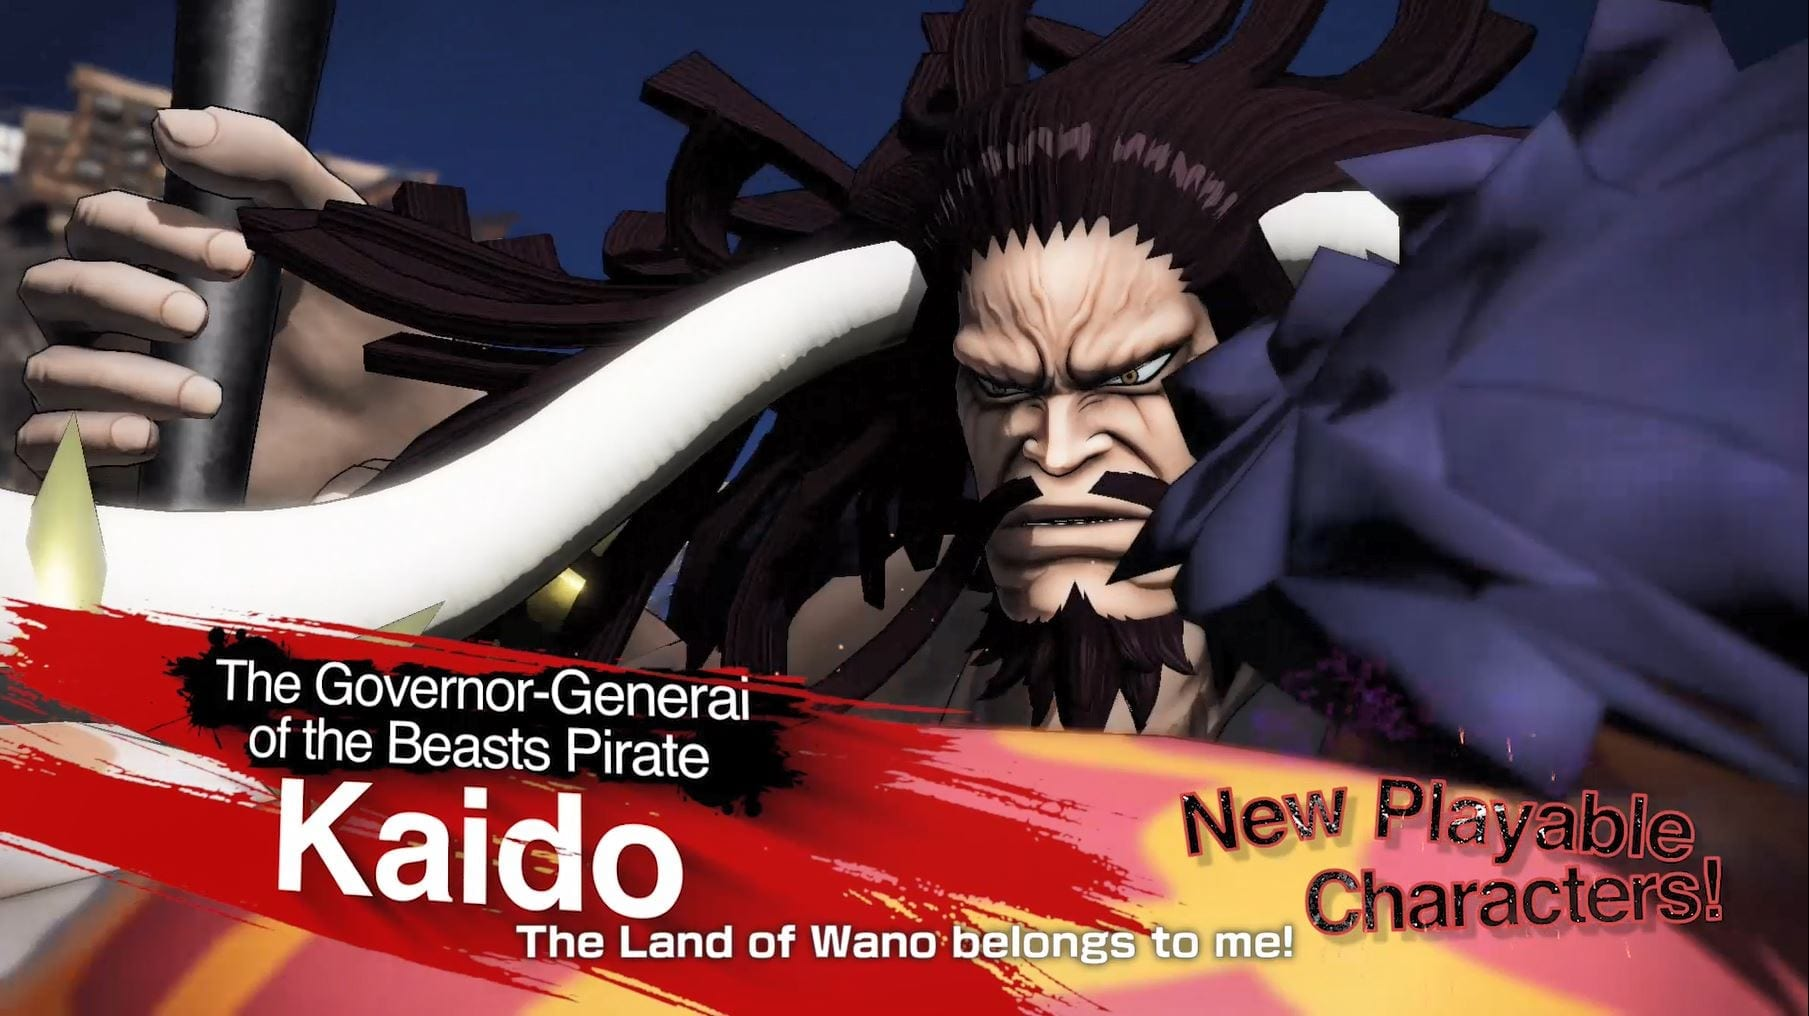 Big Mom & Kaido joins ONE PIECE Pirate Warriors 4 as playable characters in the game!